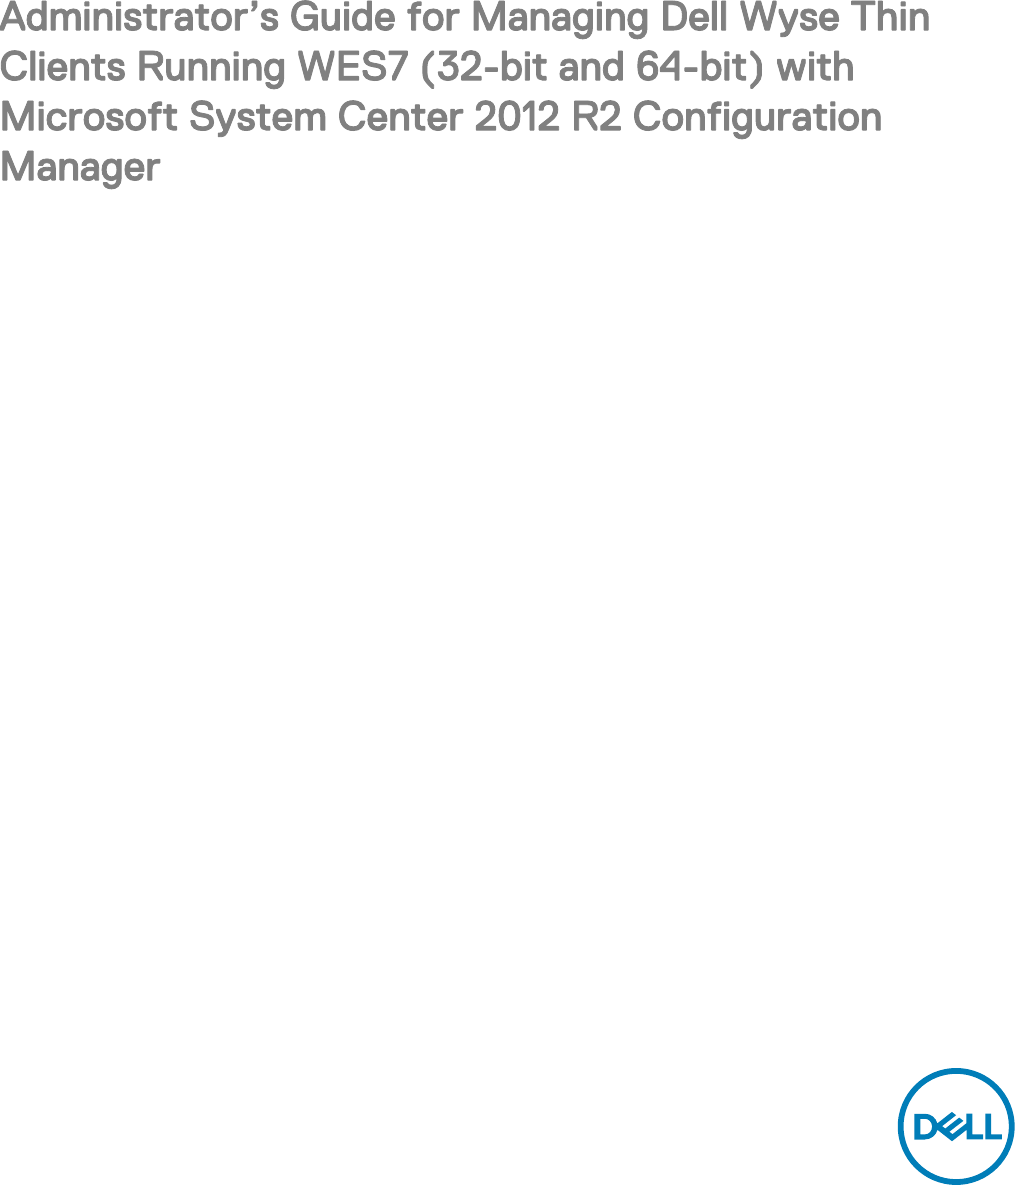 Dell Wyse 5060 thin client SCCM Administrators Guide User